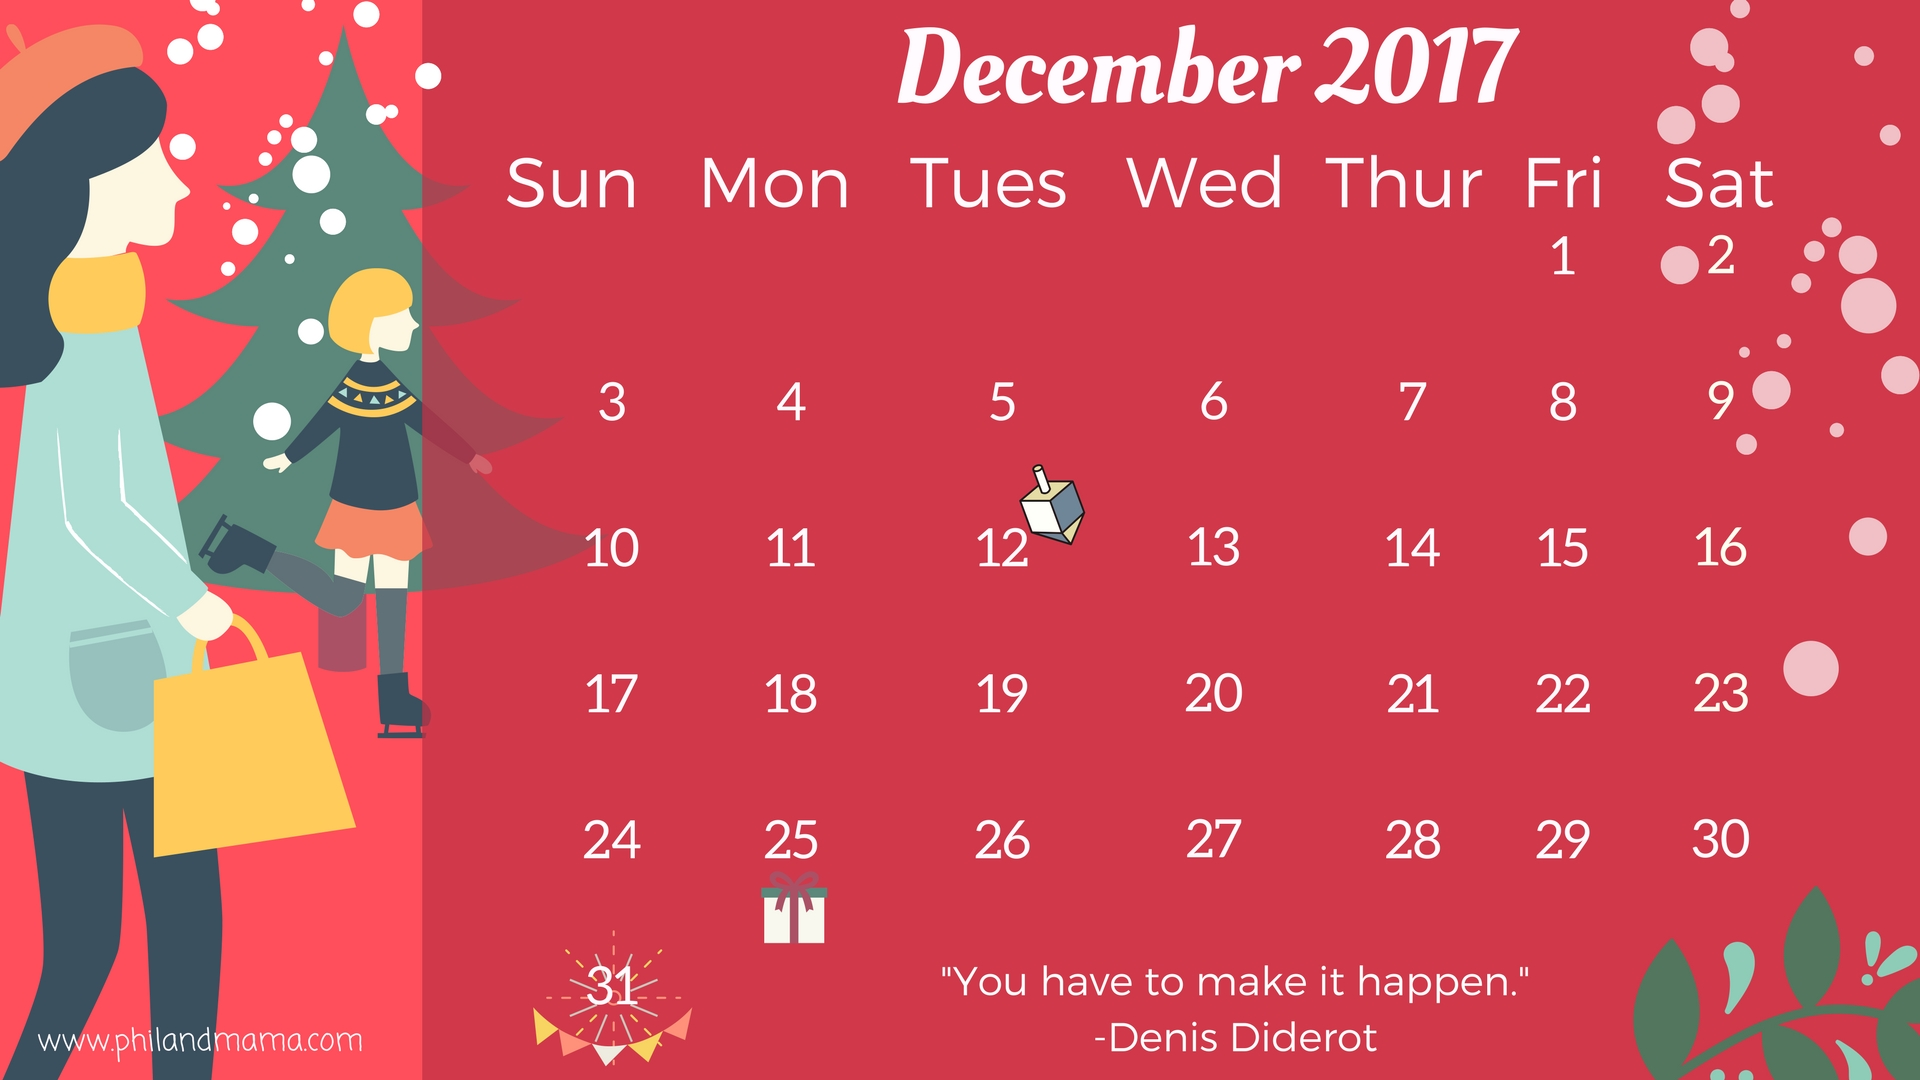 December 2017 FREE PRINTABLE CALENDAR.CLICK ON THE IMAGE FOR THE PDF FILE. FOR THE IMAGE FILE, RIGHT-CLICK AND SAVE AS.